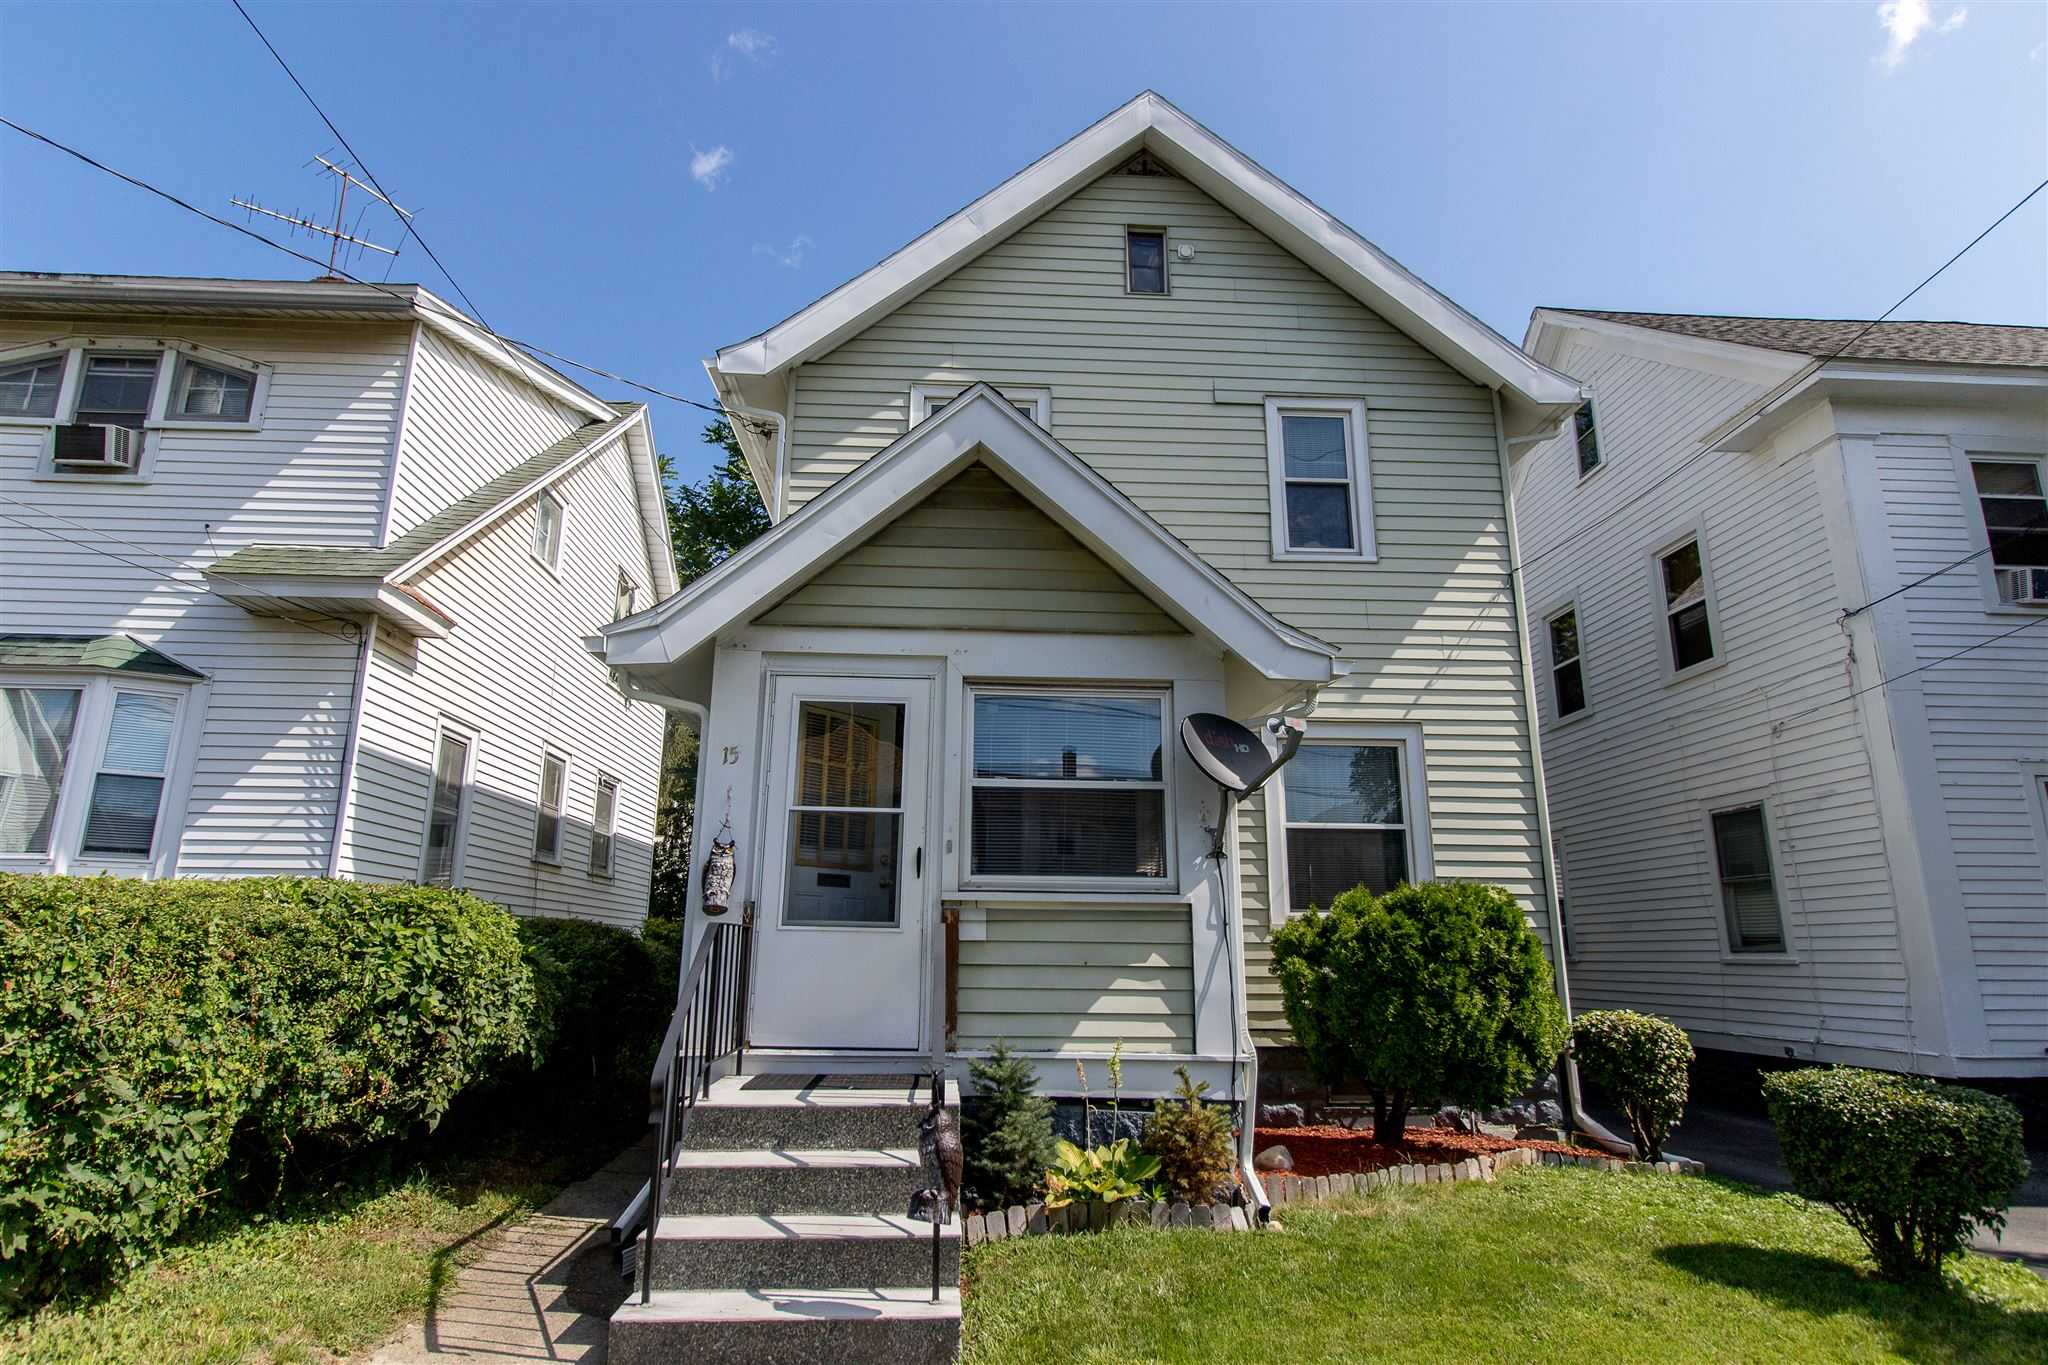 $140,000 - 3Br/1Ba -  for Sale in Albany